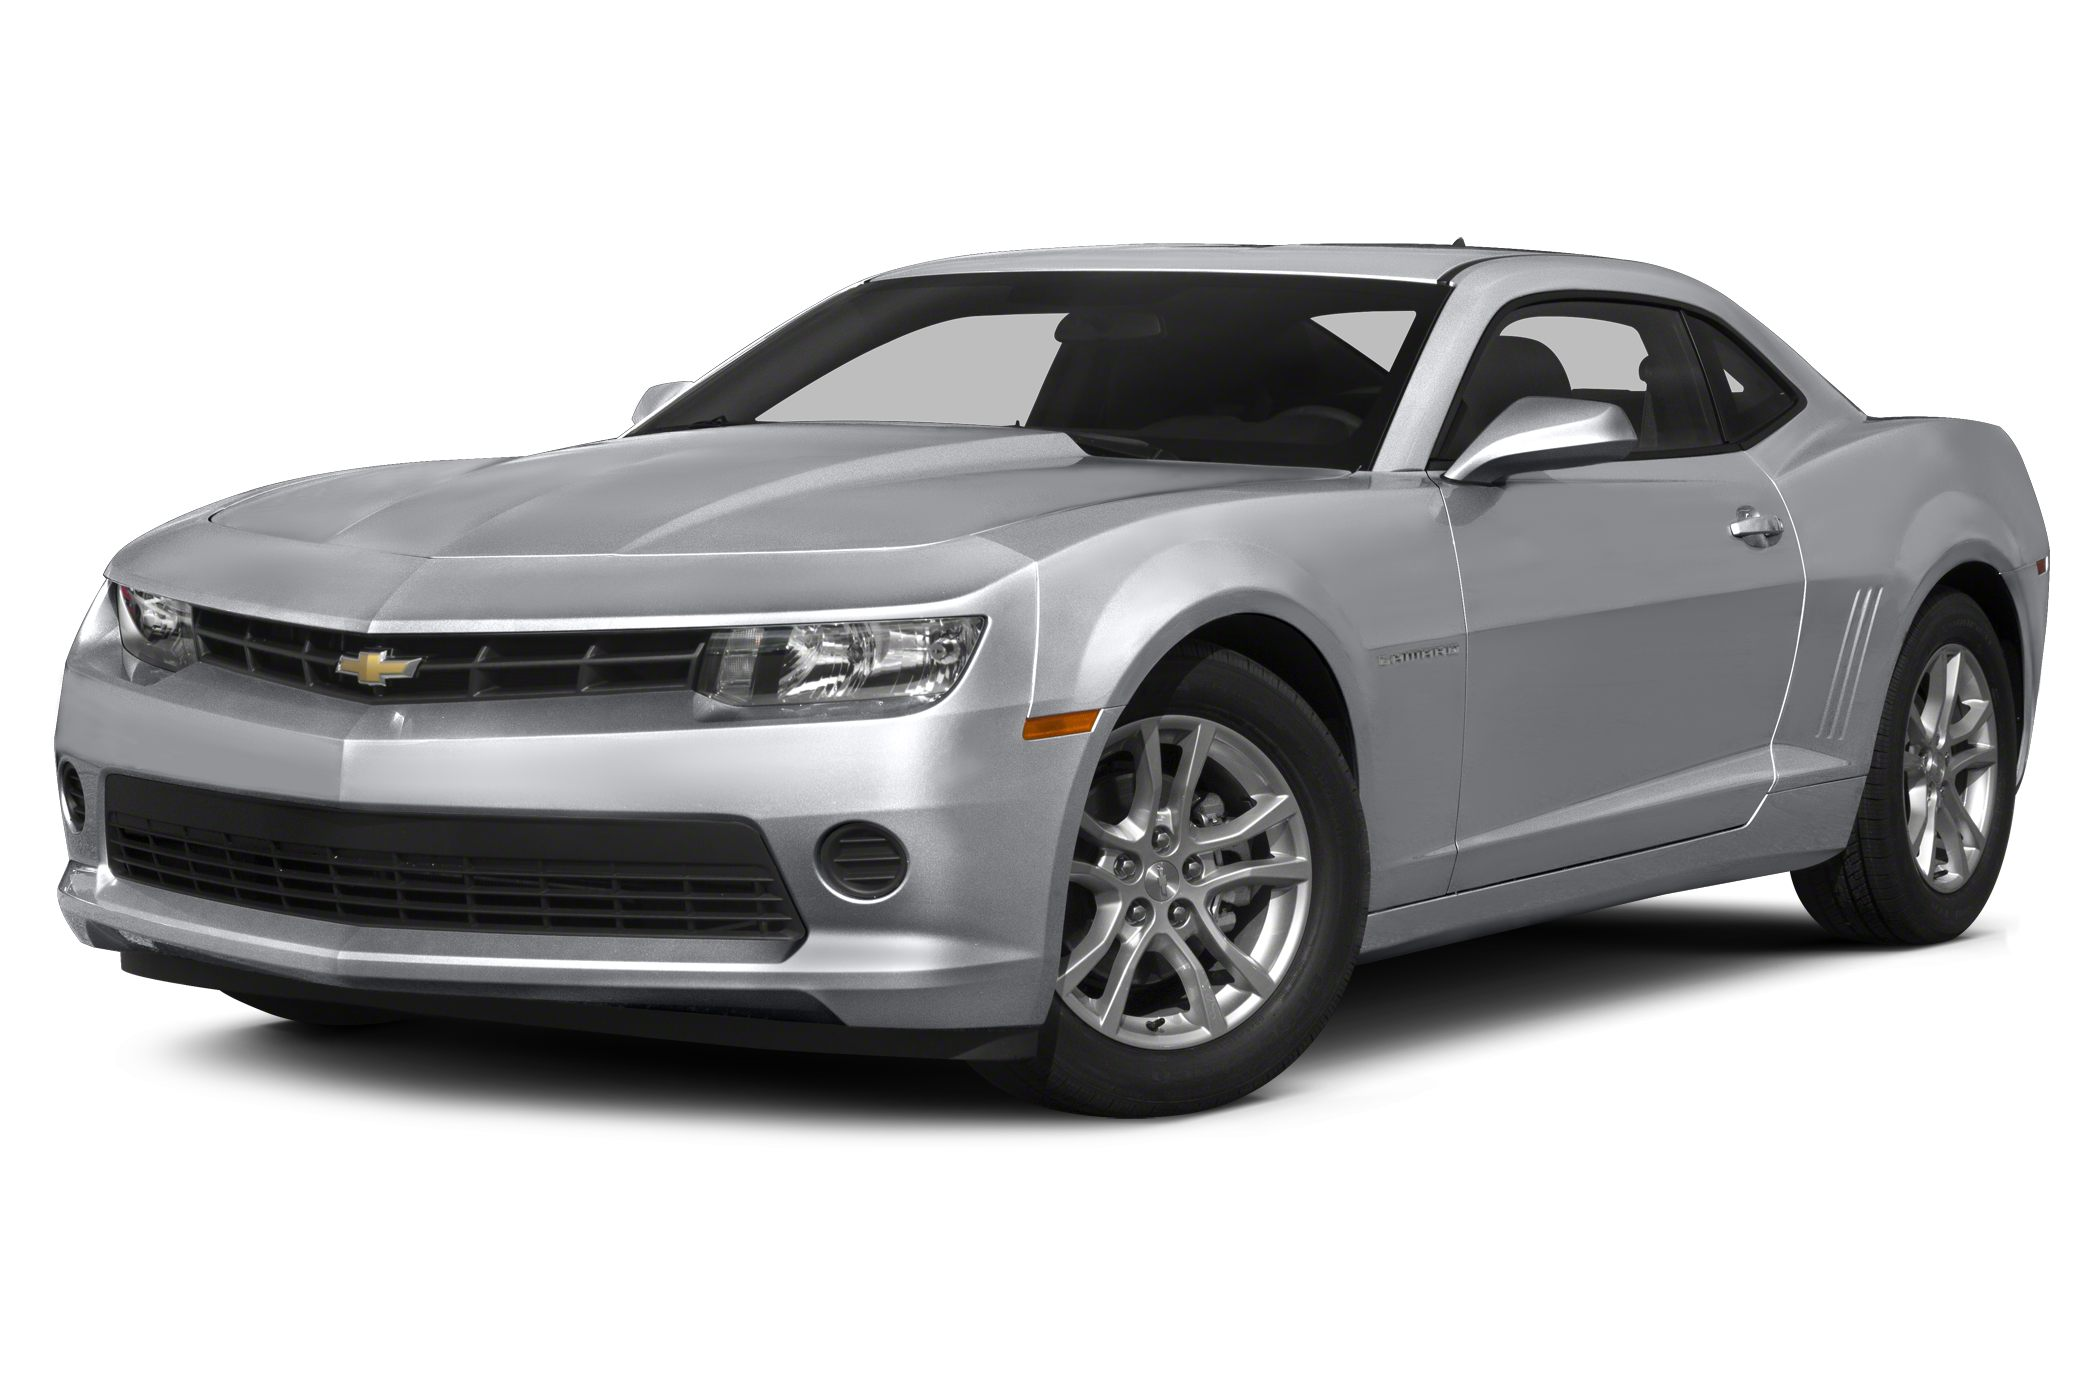 2015 Chevrolet Camaro 2LT Coupe for sale in Daphne for $34,930 with 8 miles